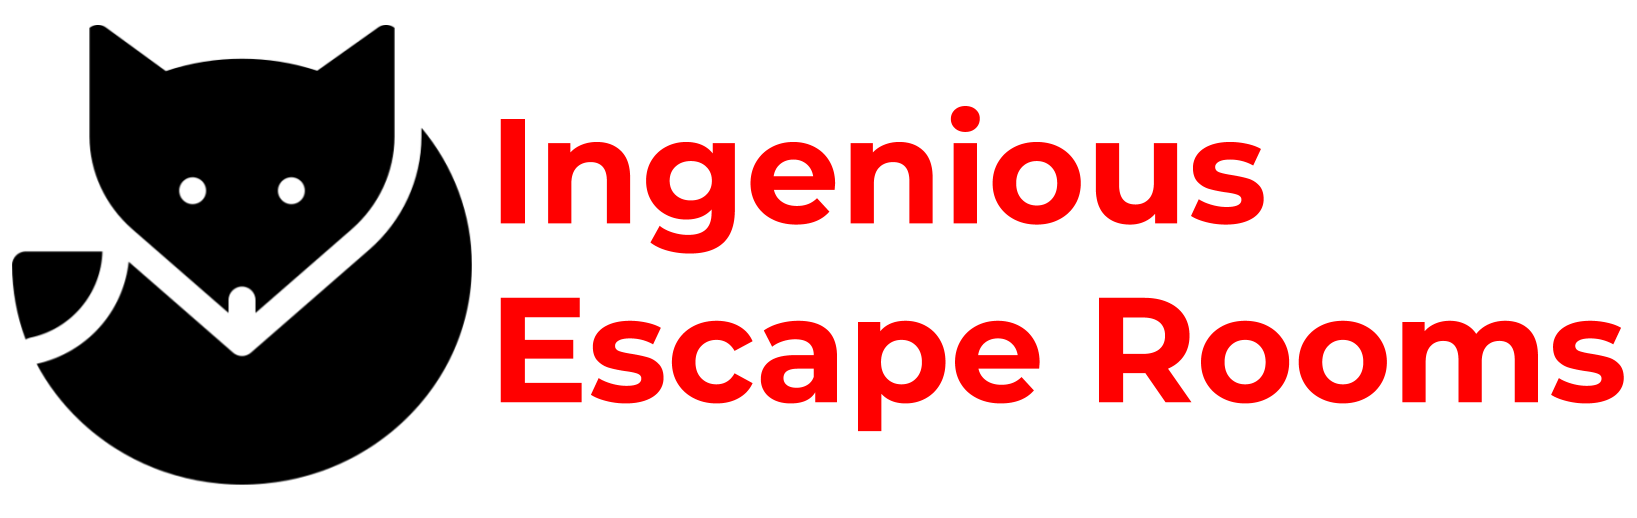 Ingenious Escape Rooms |   Pricing & Promotions